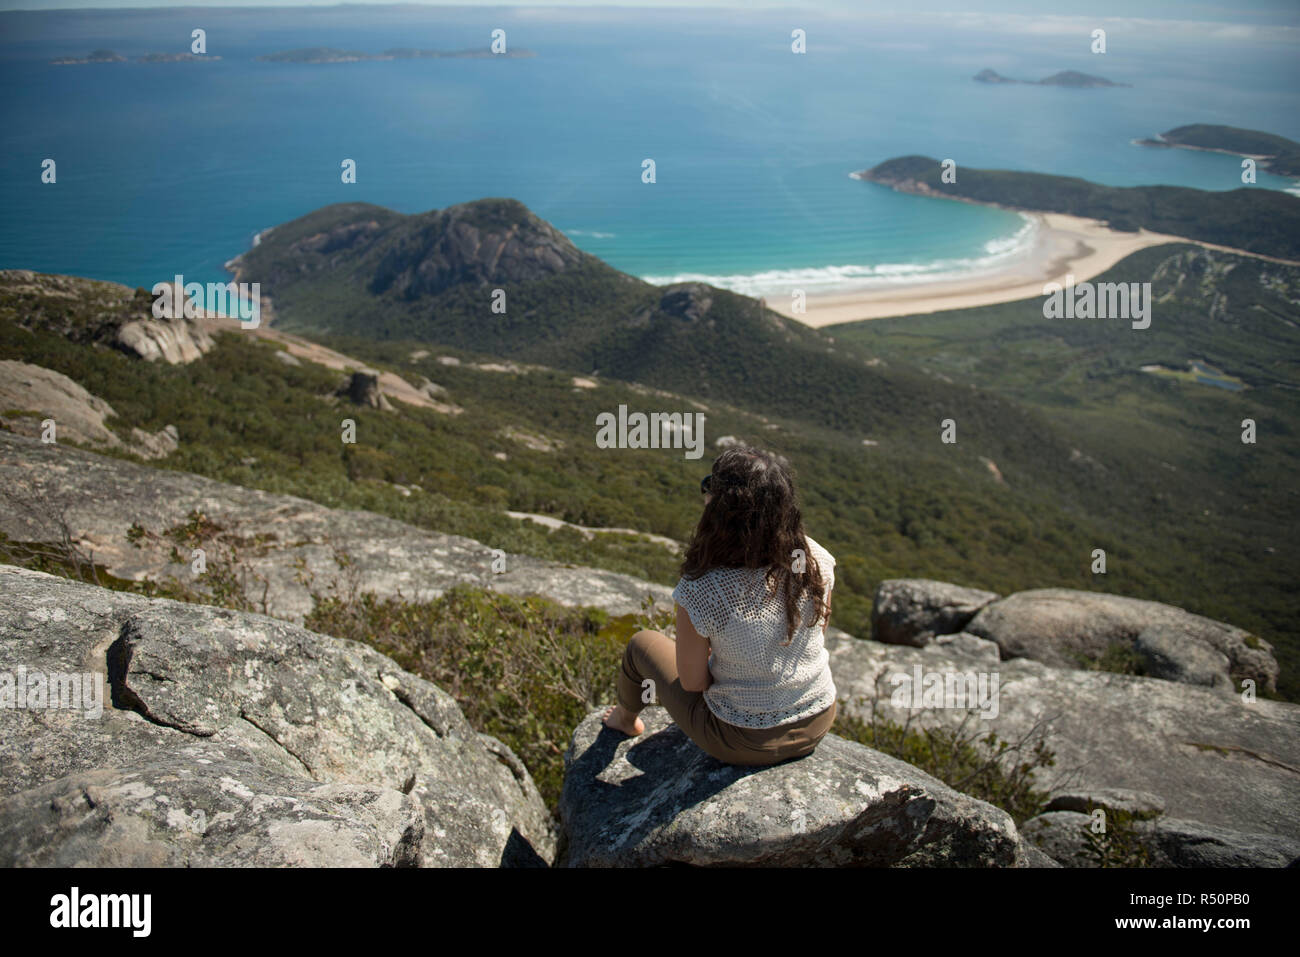 Girl looking the view on the top of Mt Oberon - Stock Image